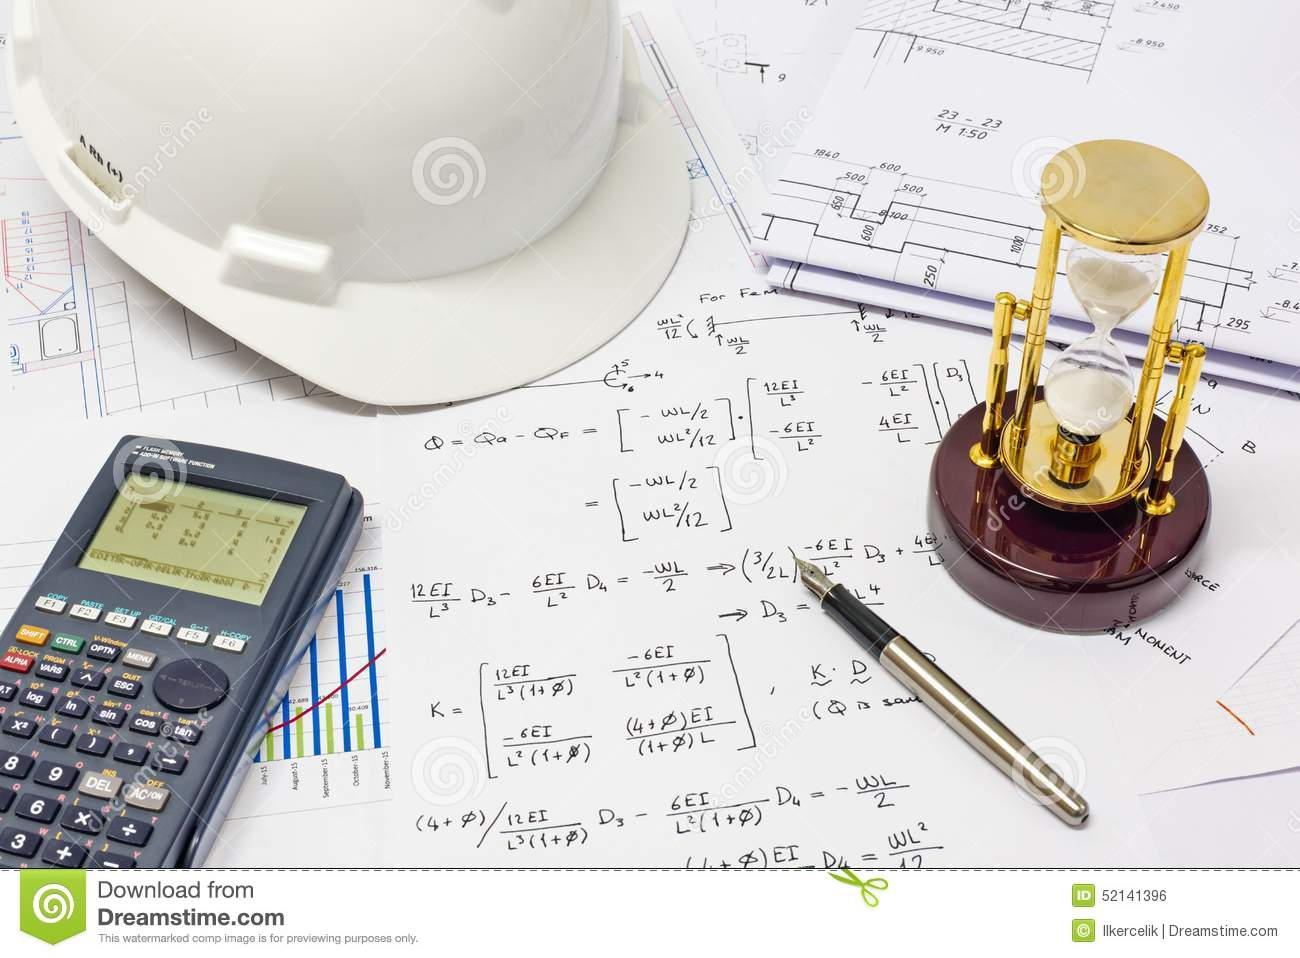 Structural Engineering Calculations : Structural analysis calculations stock photo image